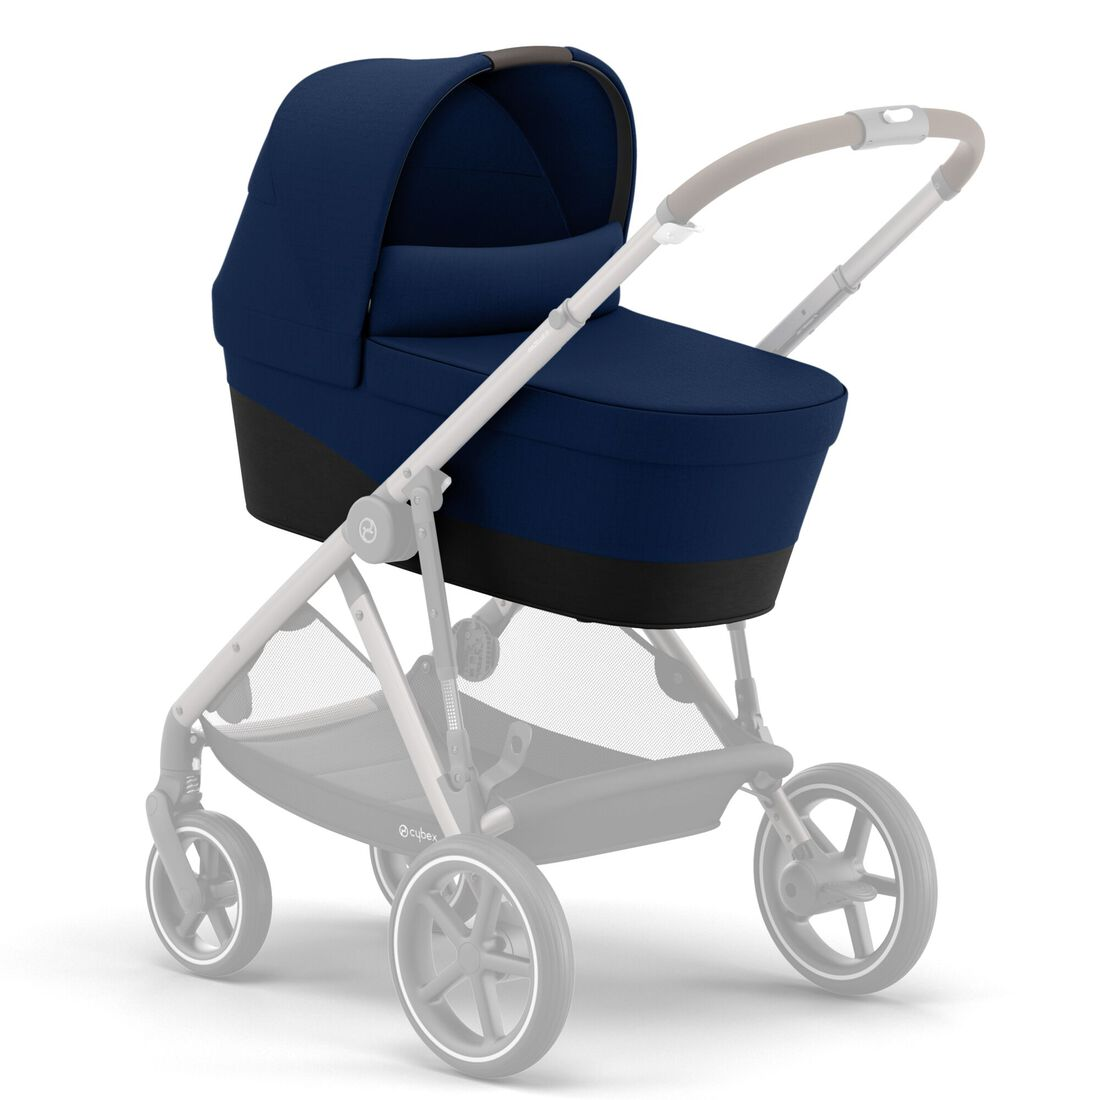 CYBEX Gazelle S Cot - Navy Blue in Navy Blue large image number 5